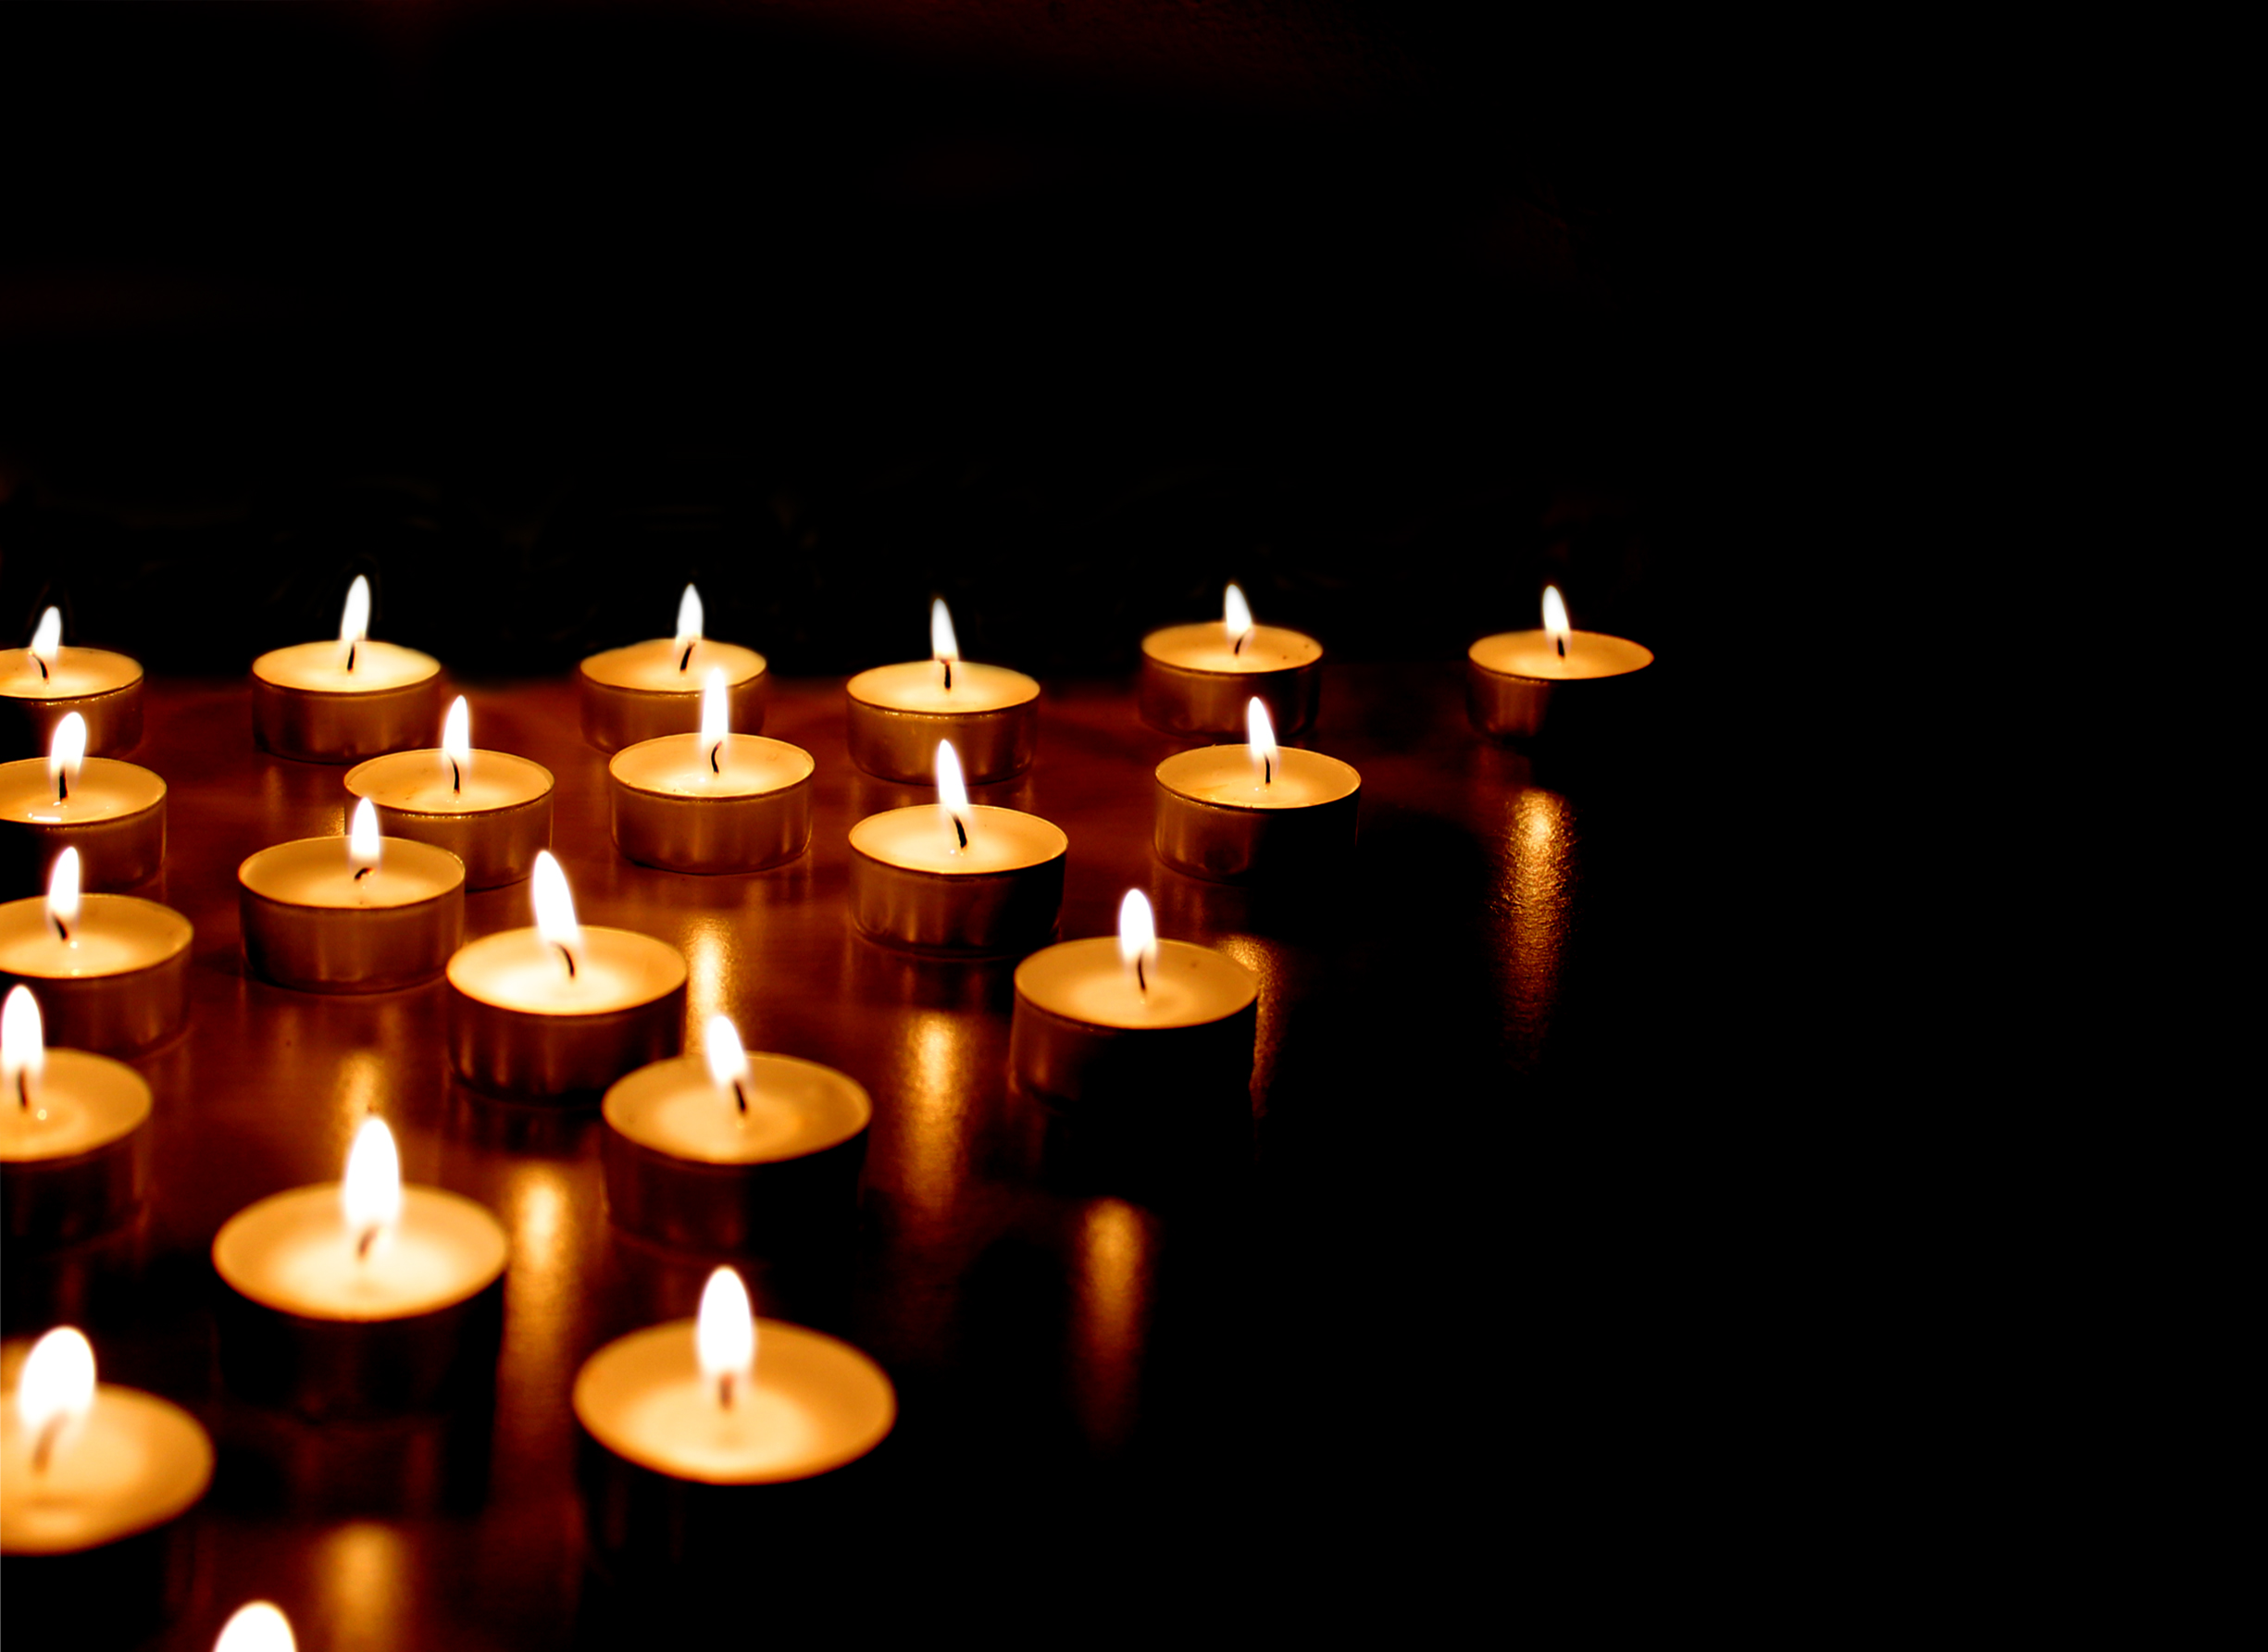 Burning candles on black background photo